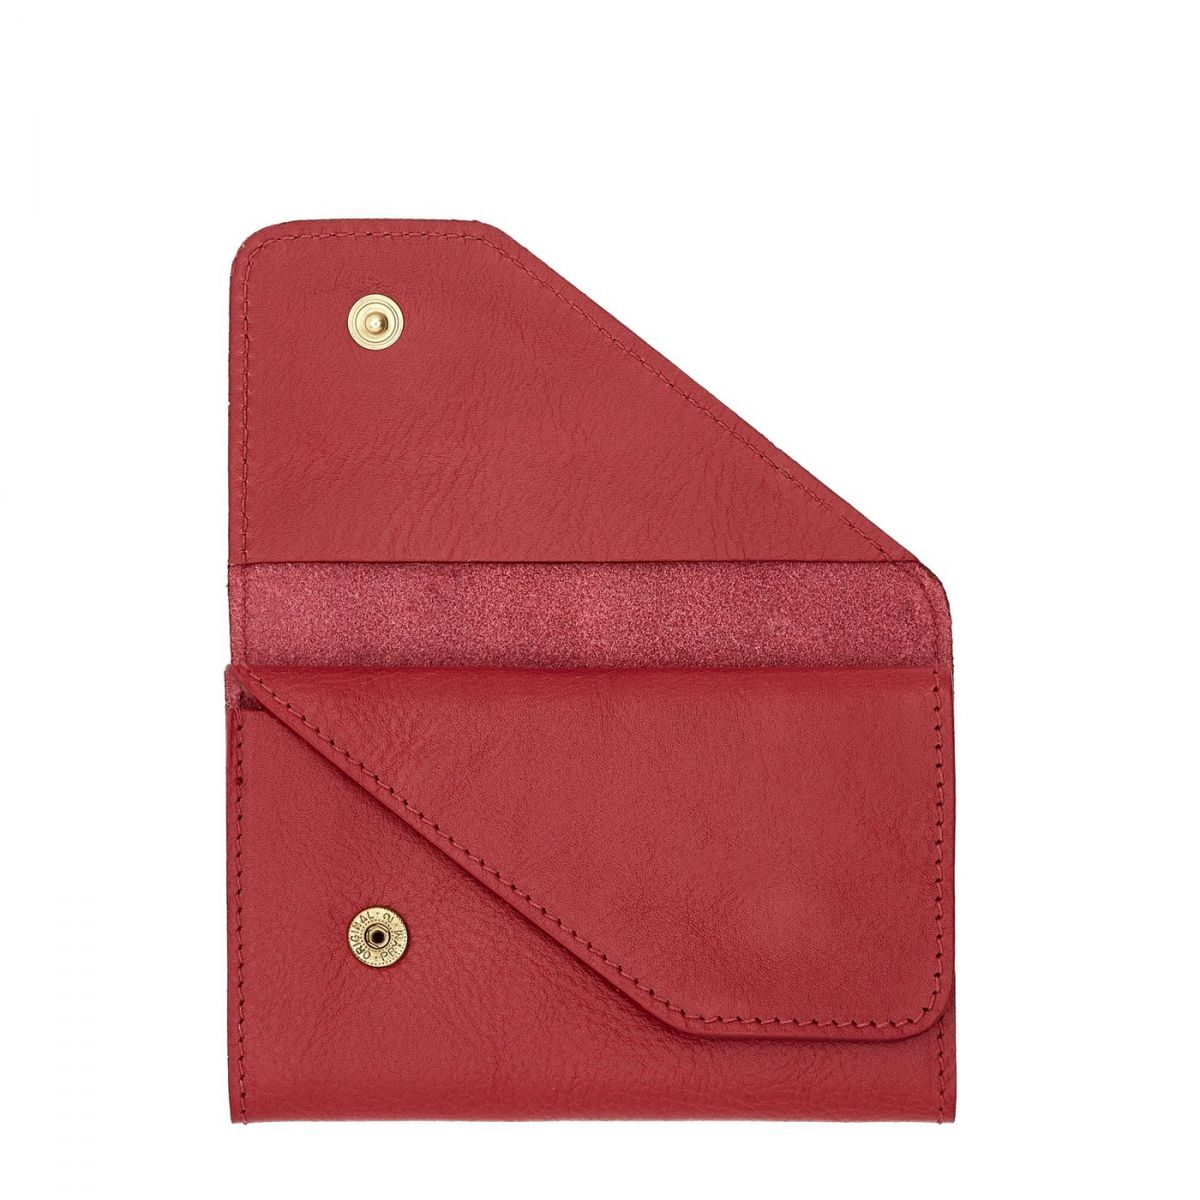 Card Case in Cowhide Leather SCC015 color Sumac | Details